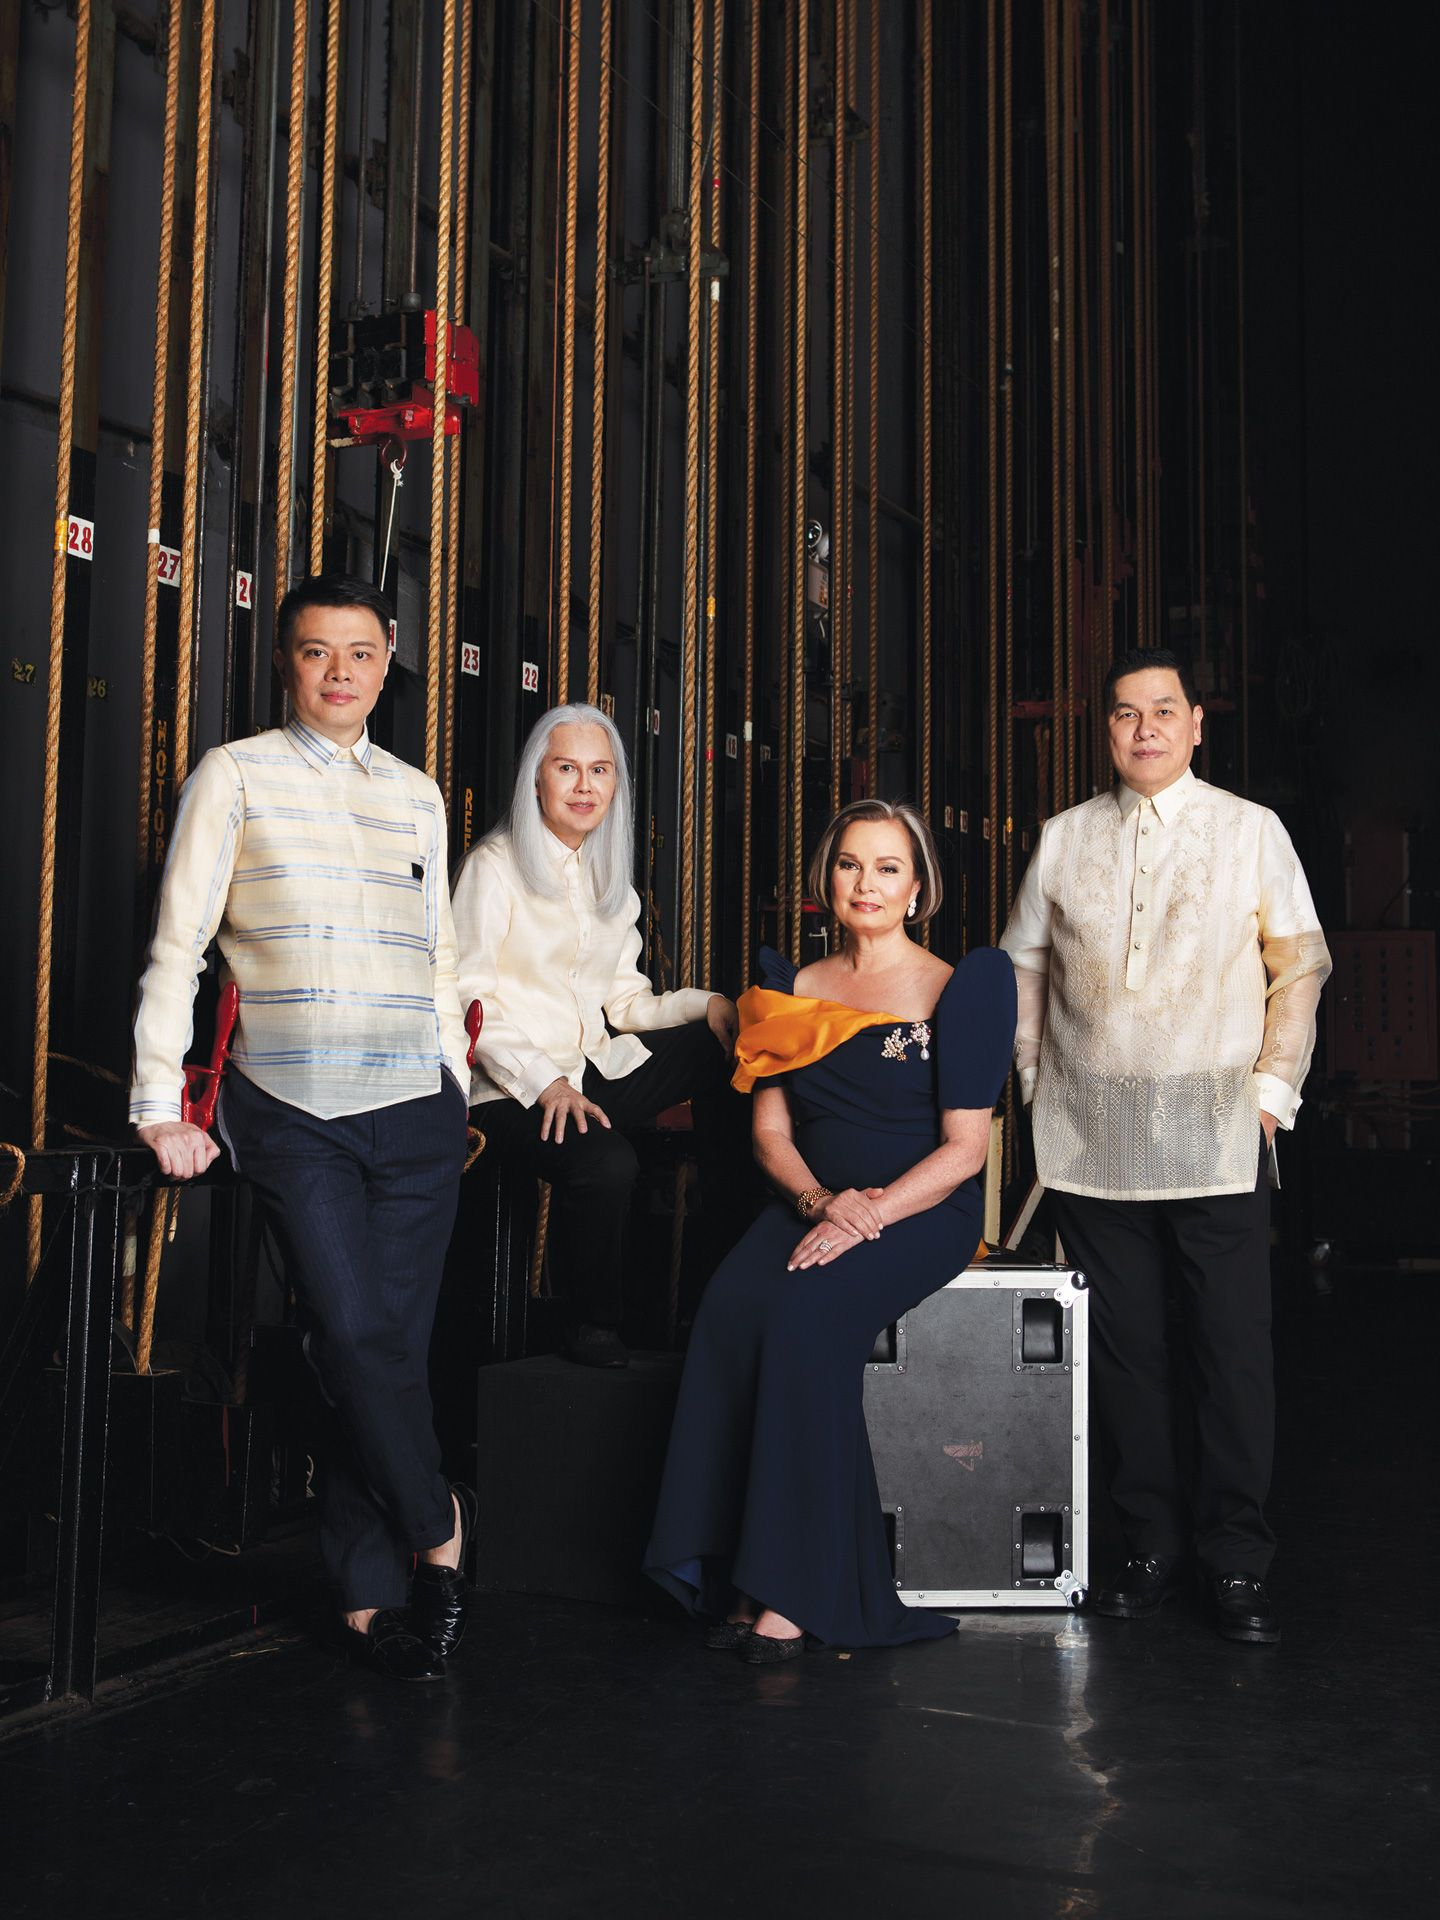 Artistic director Gino Gonzales, Chief mentor Inno Sotto, CCP Chairwoman Margie Moran-Floirendo, and Bench founder Ben Chan